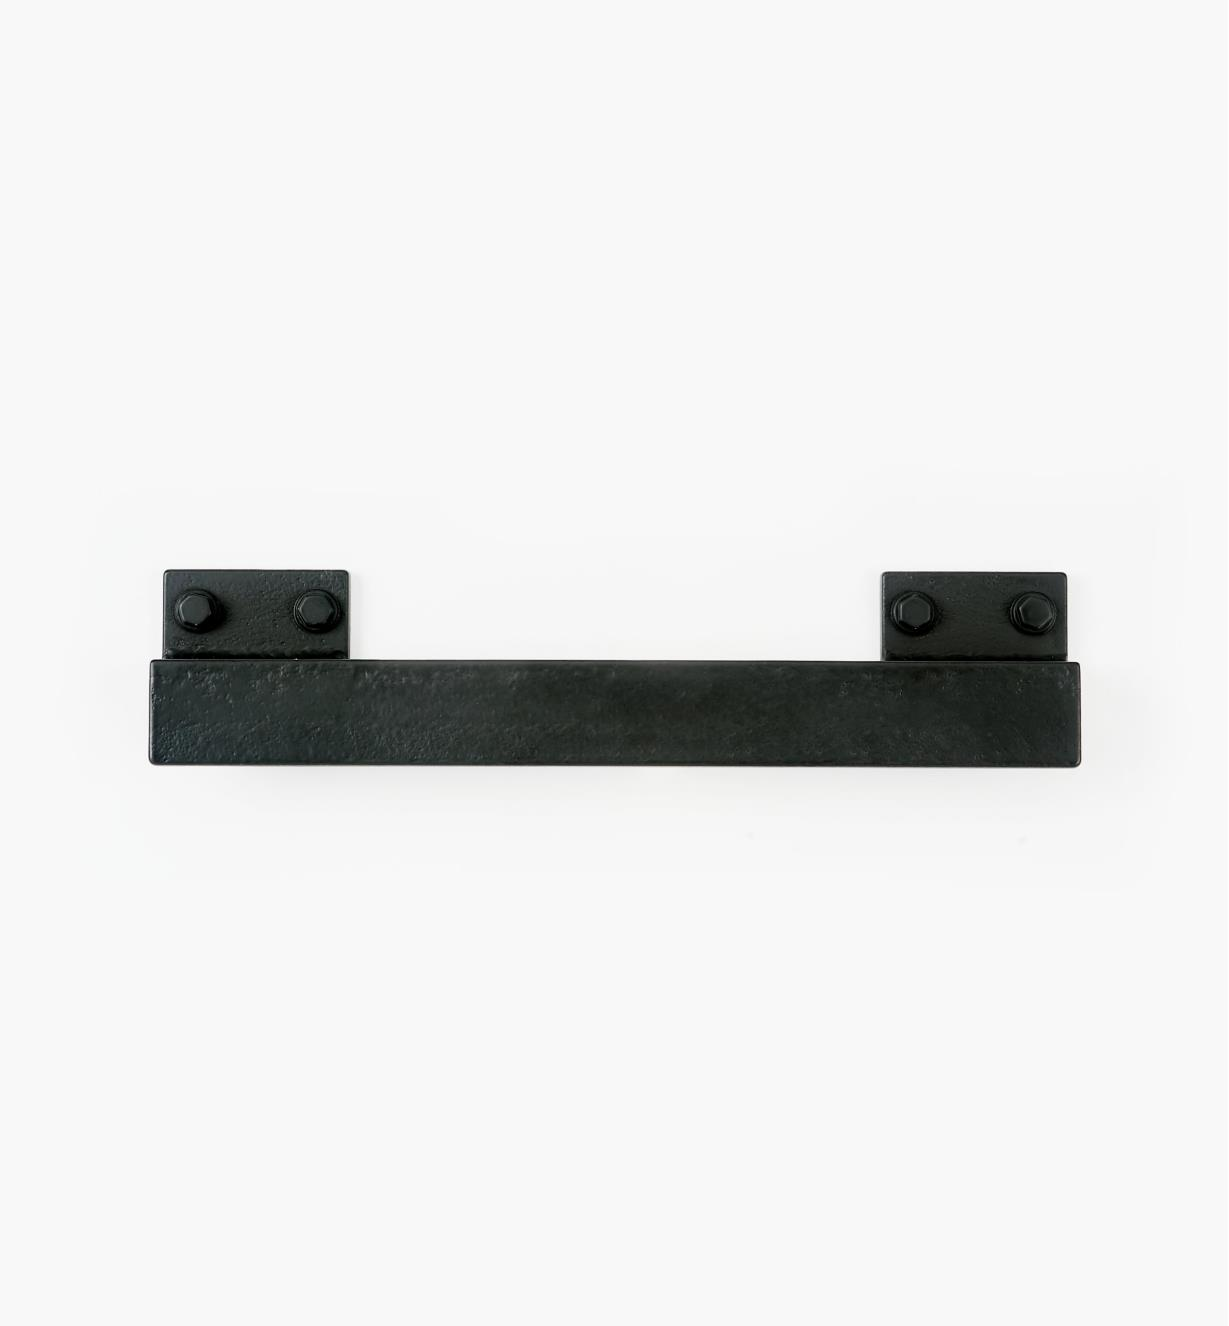 00A7842 - Factory Hardware 224mm/160mm Blackened Iron Handle, each